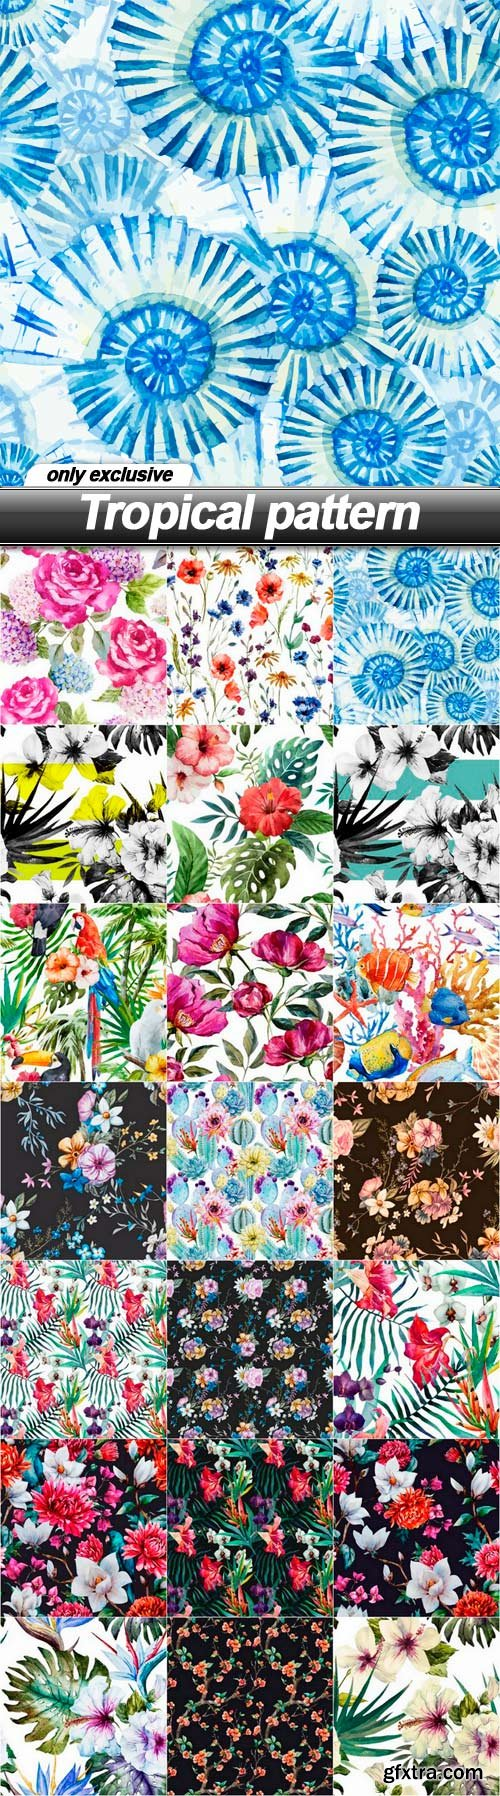 Tropical pattern - 21 EPS